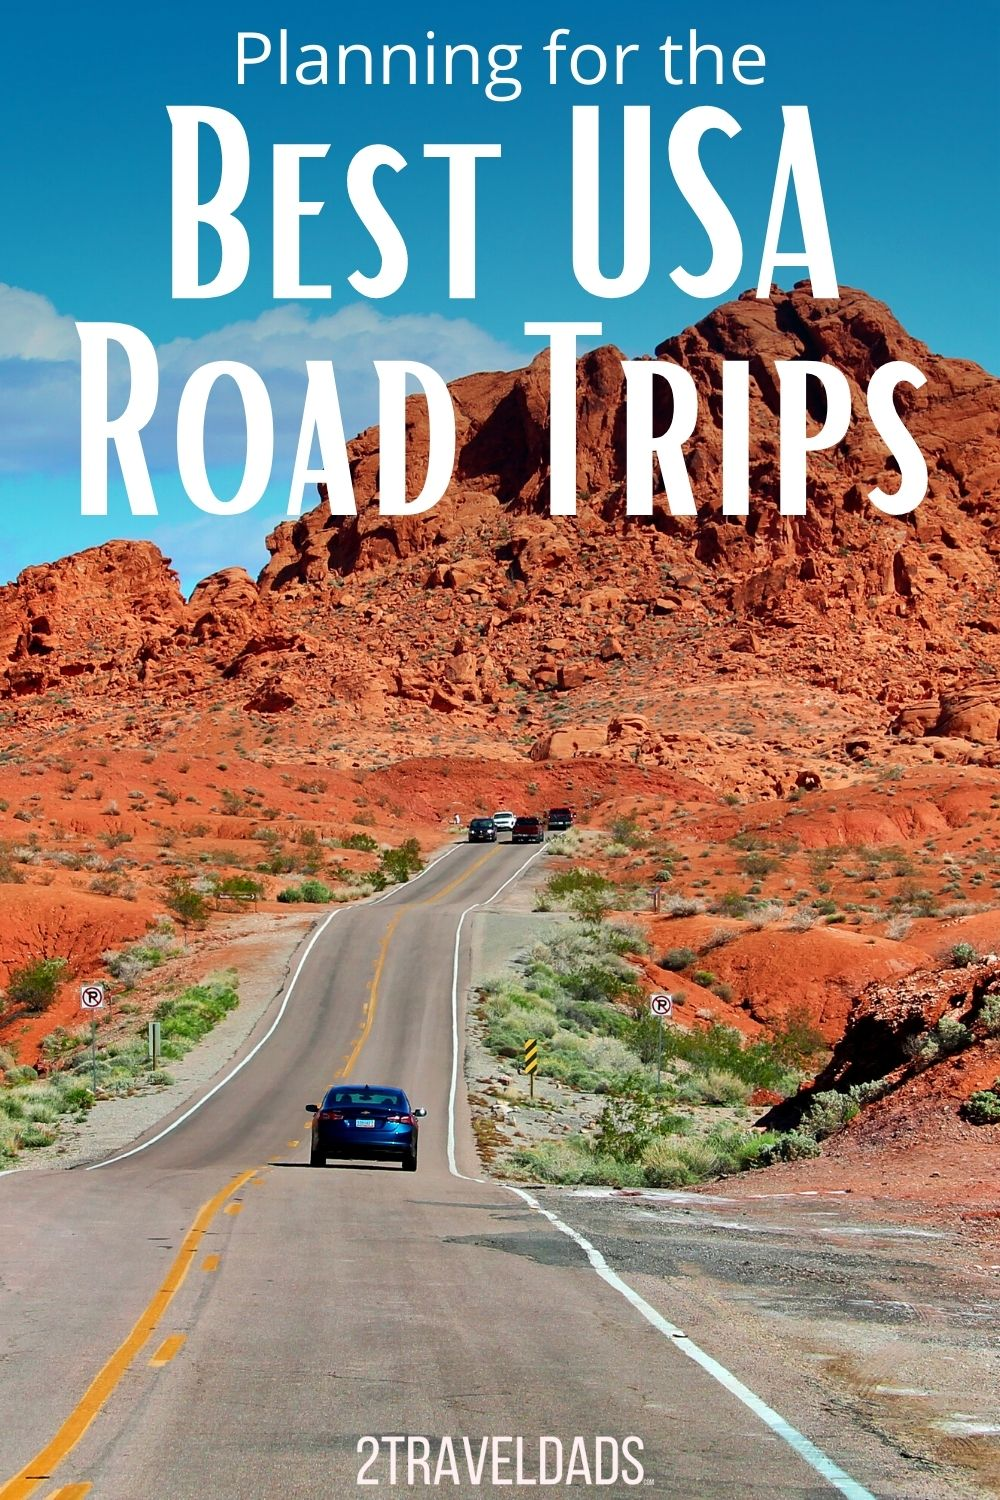 Road Trip planning can be easy, especially if you are open to flying to the start of your trip. Best tips for planning road trip routes using pre-planned itineraries and tools. *And getting kids involved!*